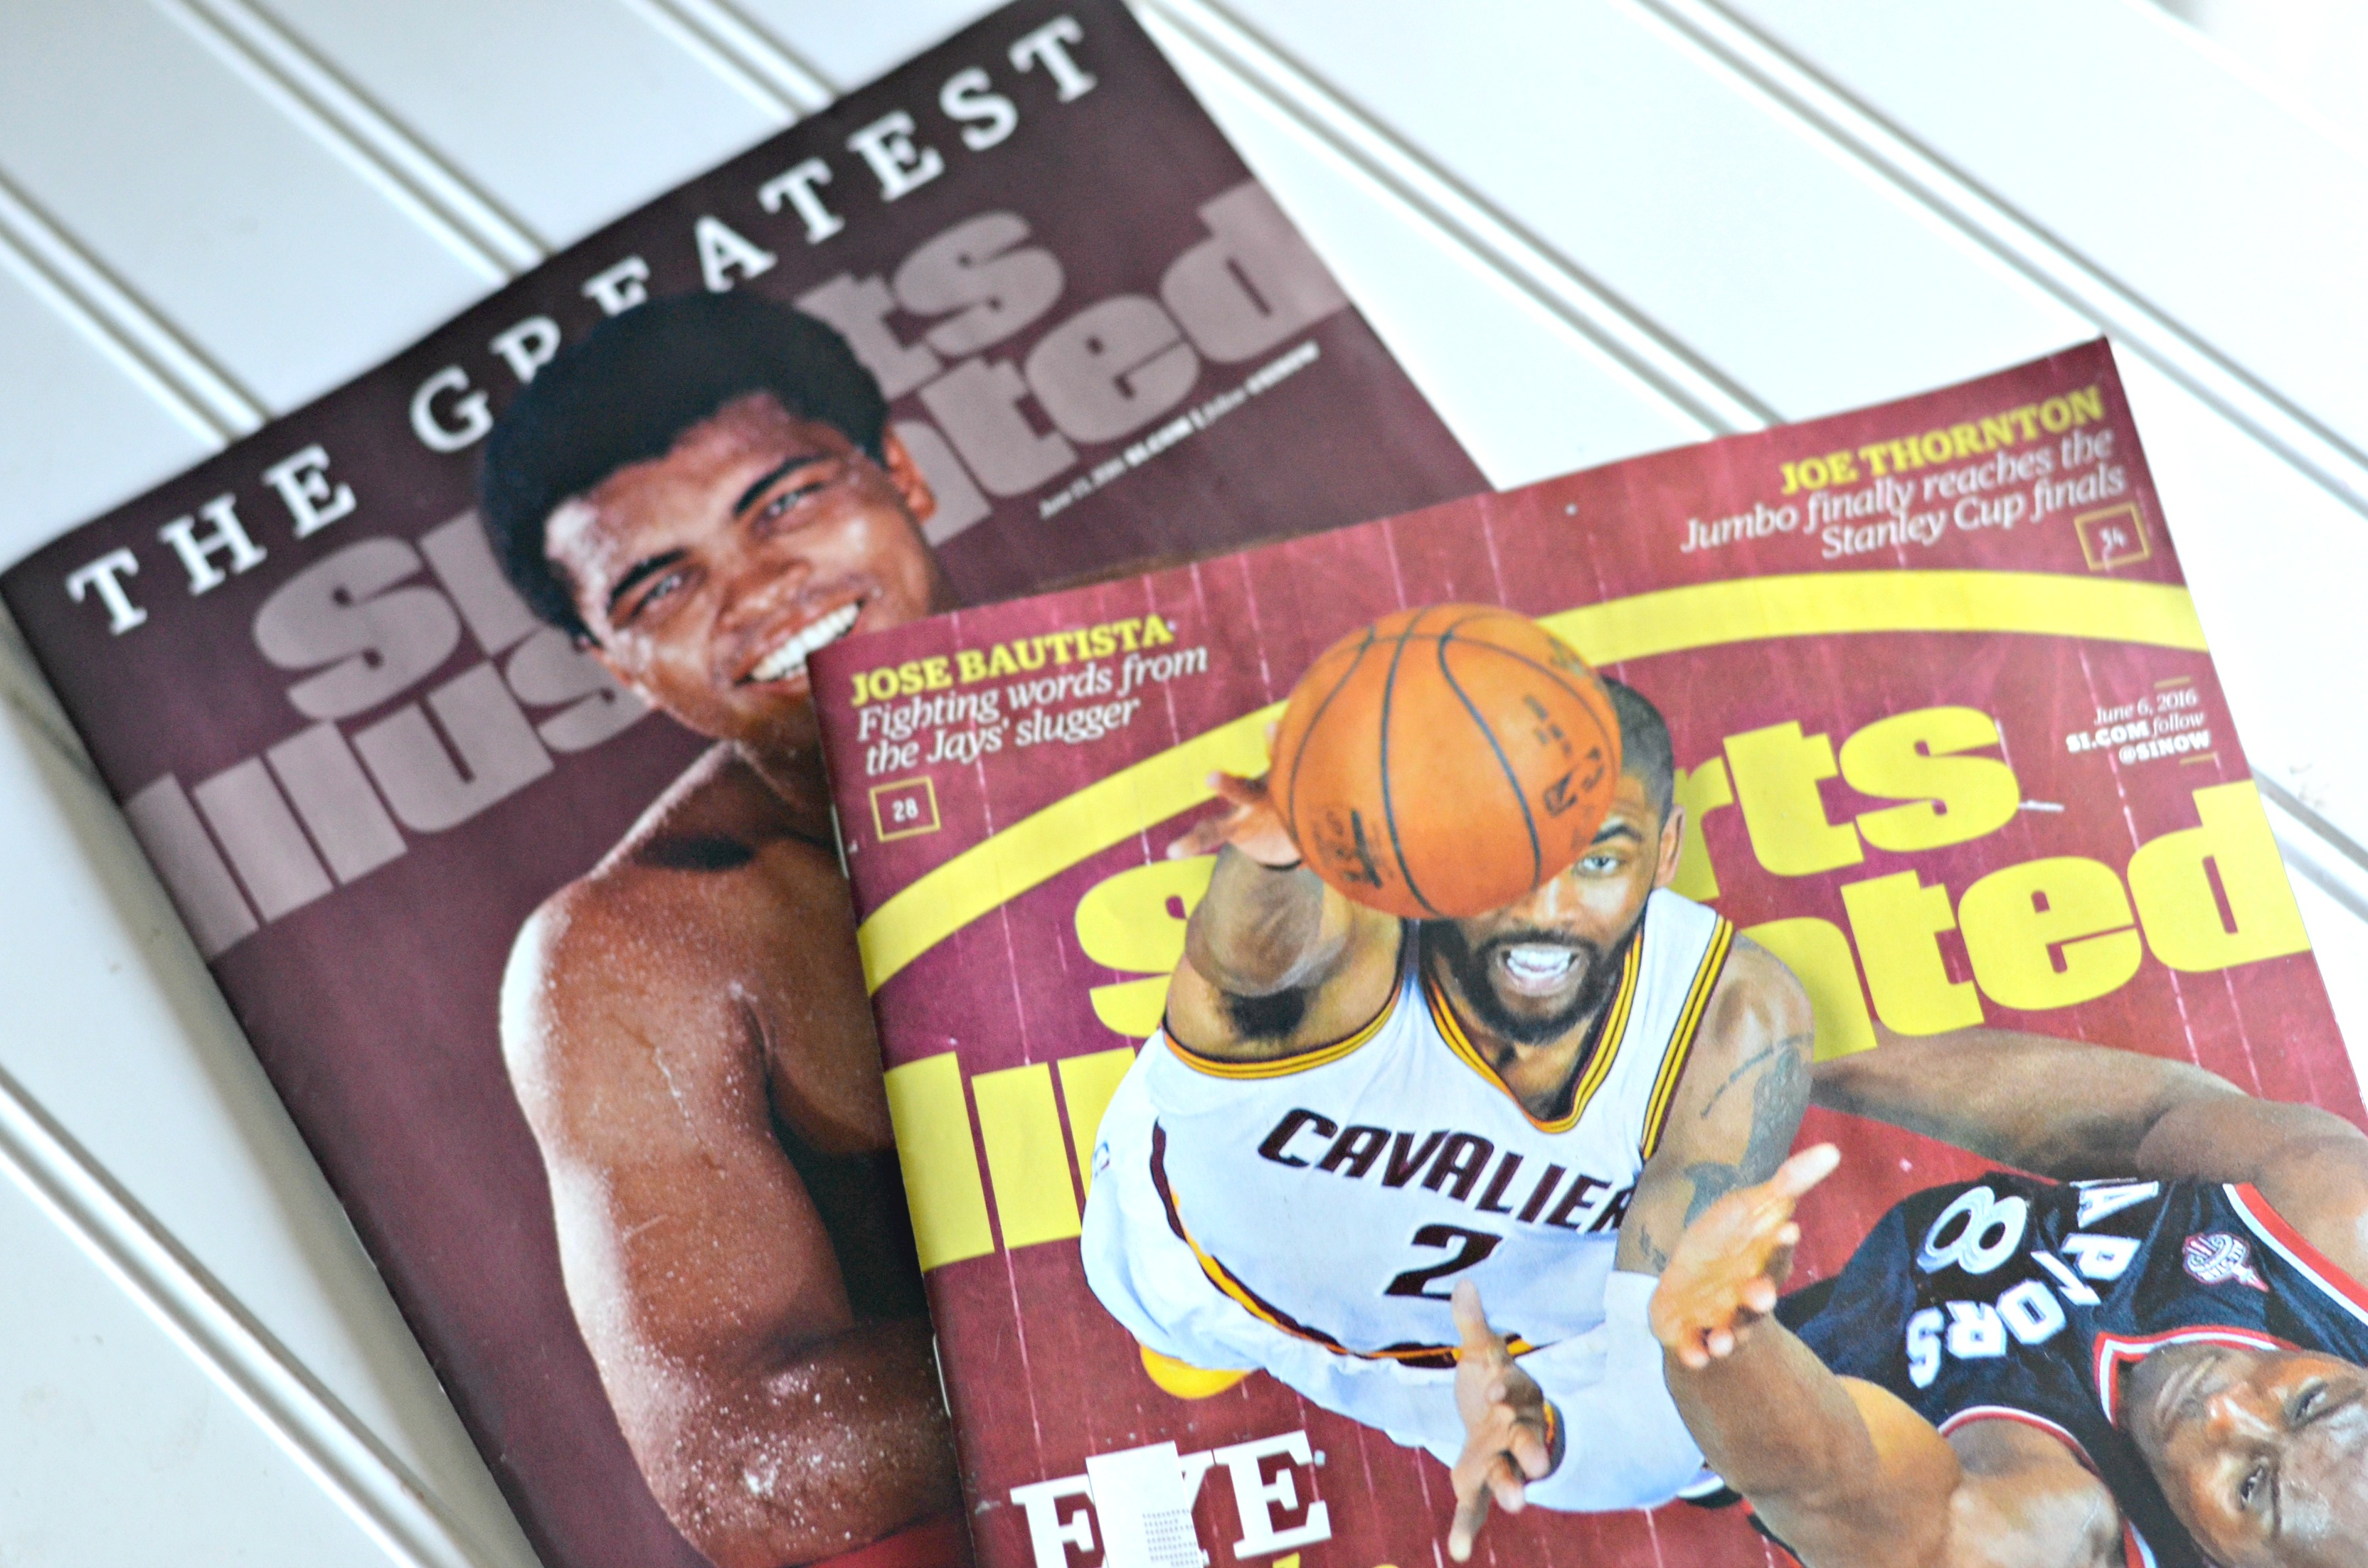 No-cost magazine deal on magazines like O, People, and (pictured) Sports Illustrated